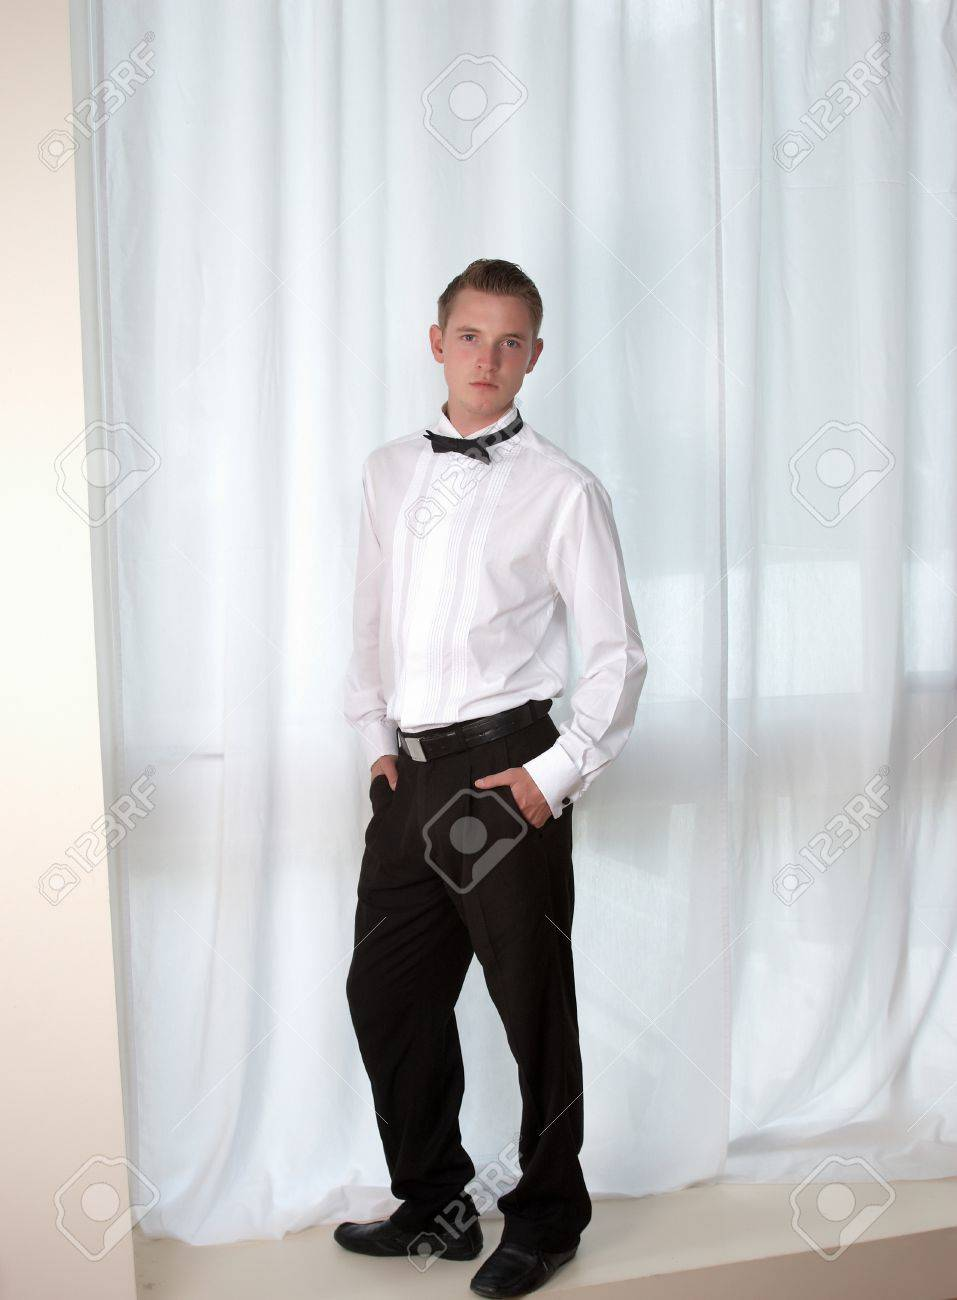 A Young Man In Smart Dress White Shirt And Bow Tie Stock Photo